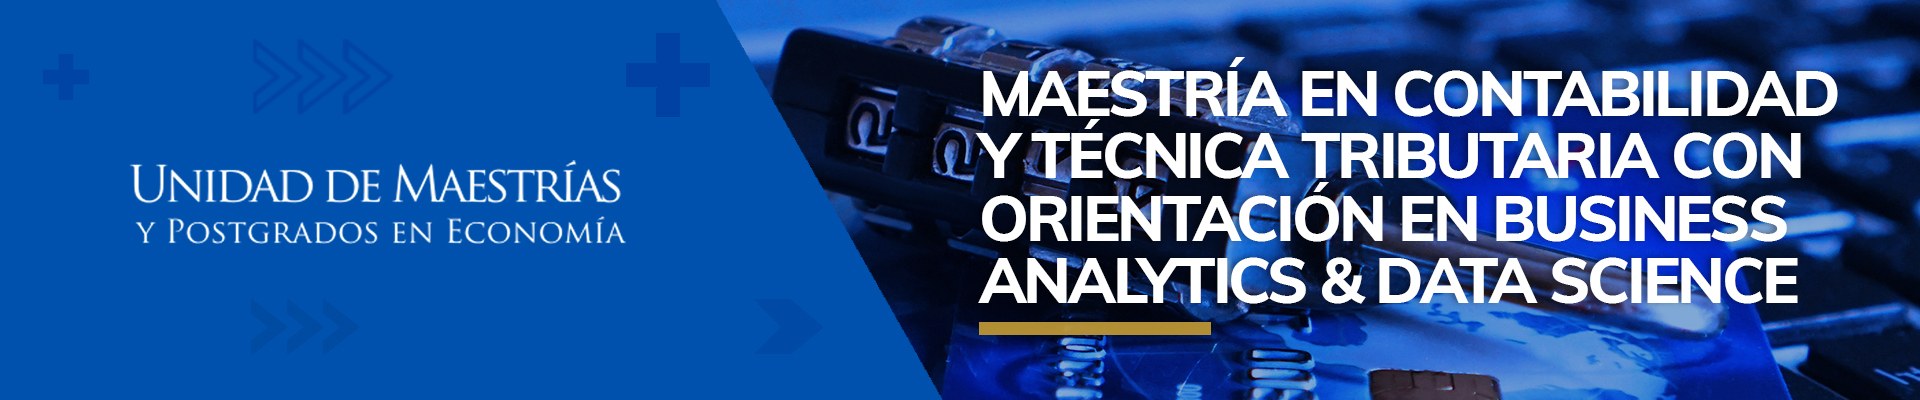 Maestría en Contabilidad y Técnica tributaria + Business Analytics & Data Science